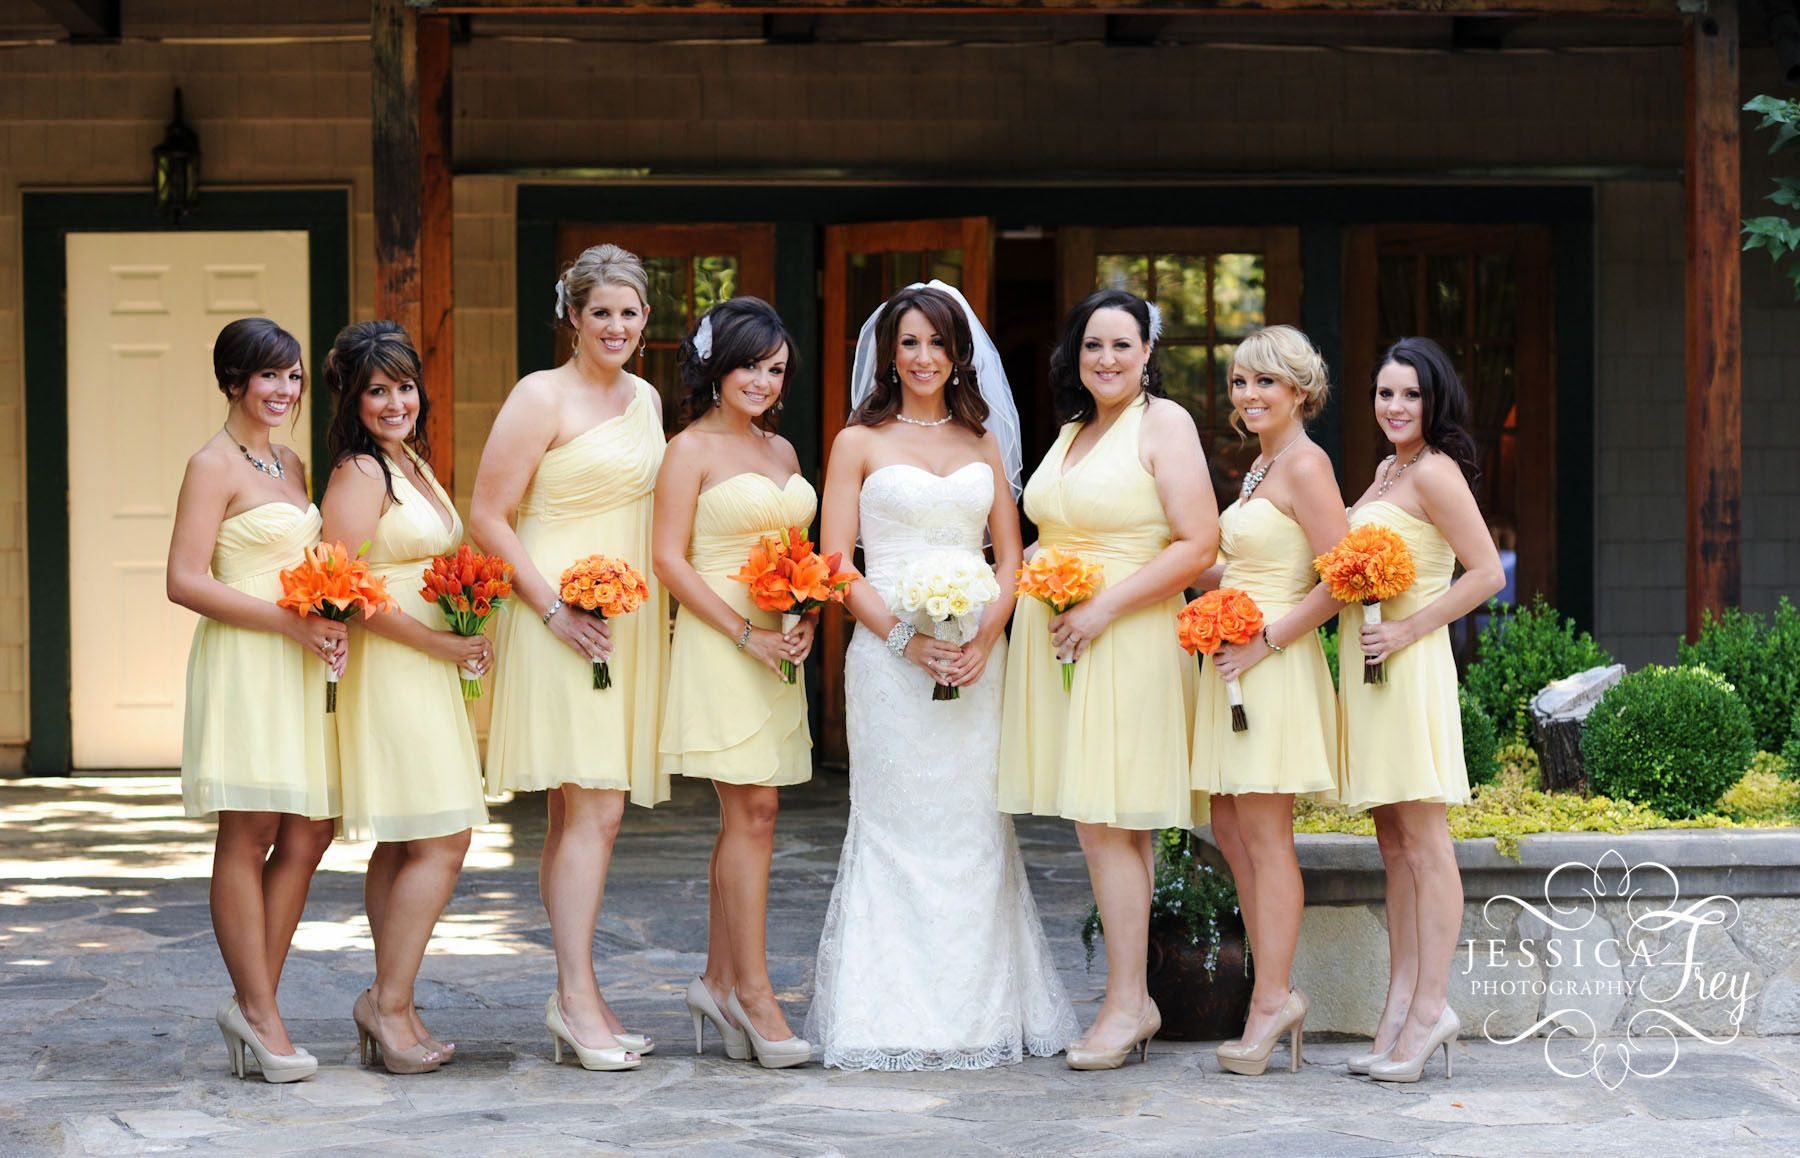 Bridesmaid dresses 10g 18001158 pixels bouquets bridesmaid dresses 10g 18001158 pixels bouquets pinterest yellow dress wedding and pastel bridesmaids ombrellifo Choice Image